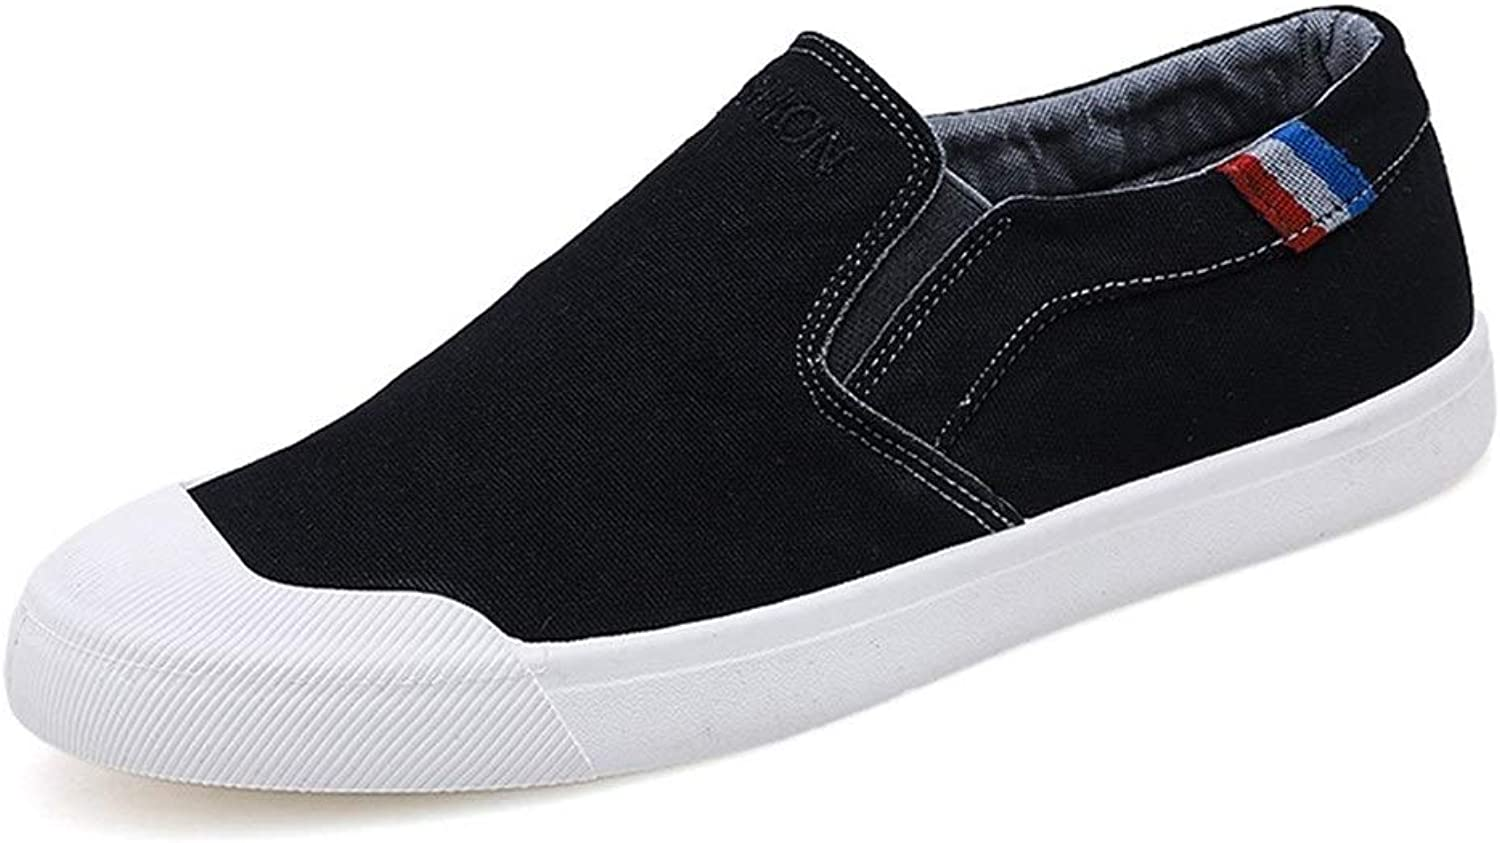 Ino Fashion Sneaker for Men Sports shoes Slip On Style Canvas Troll Toe Outside Leisure Trend